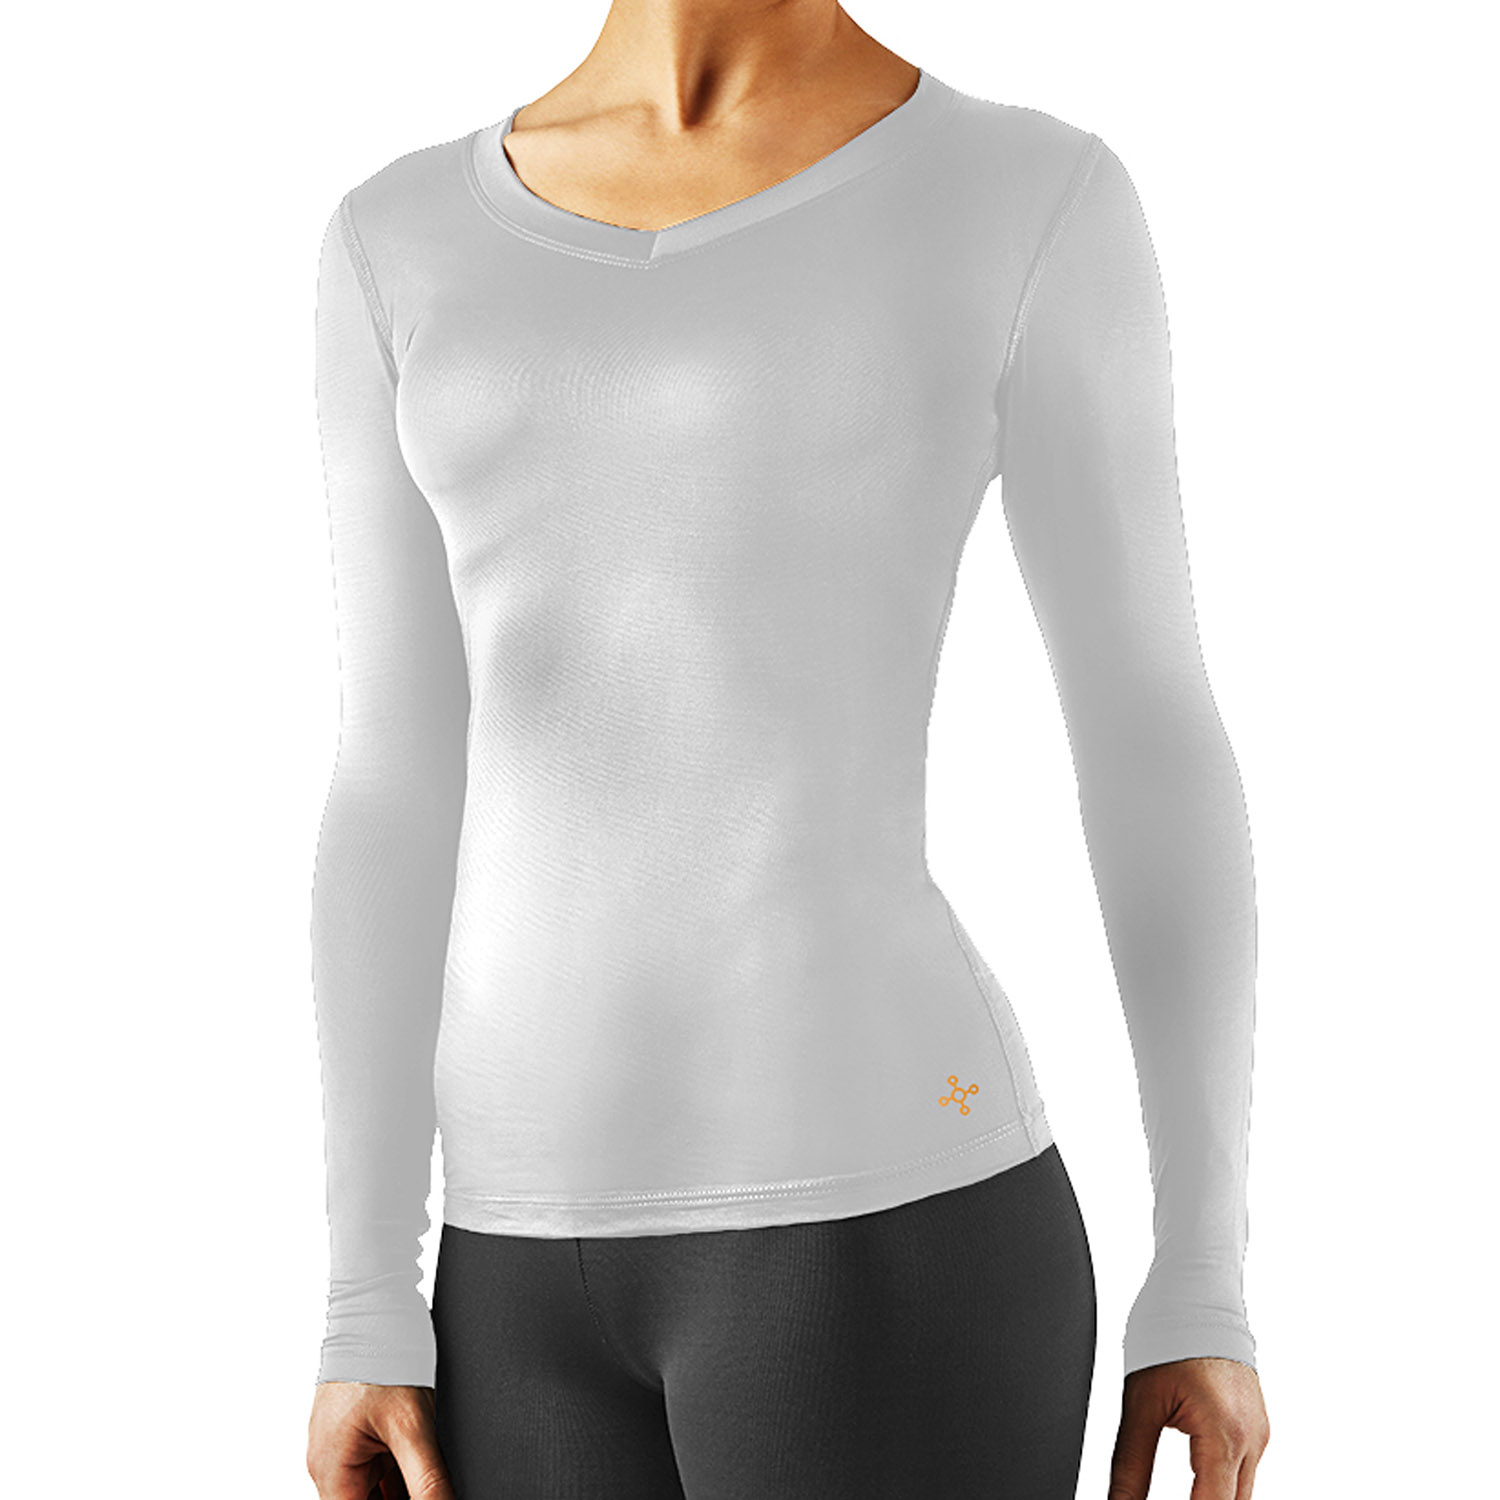 Tommie Copper Compression Wear Catalog